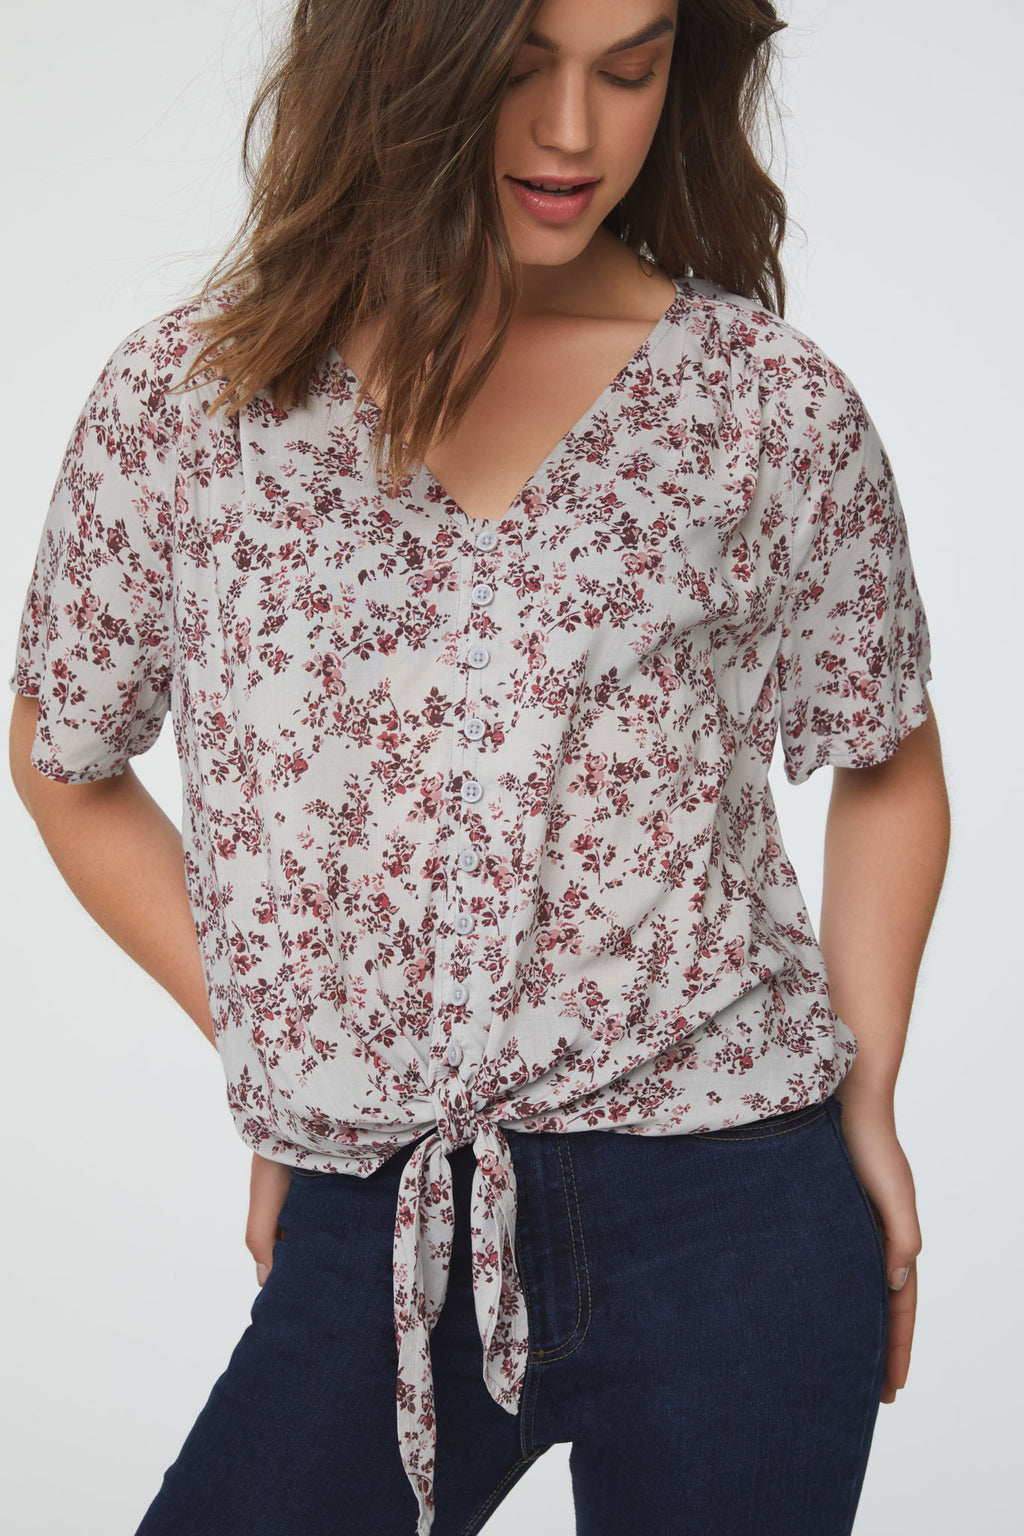 Woman wearing a silky, short sleeve, button front v-neck blouse in vintage floral print with self tie front and drop shoulder